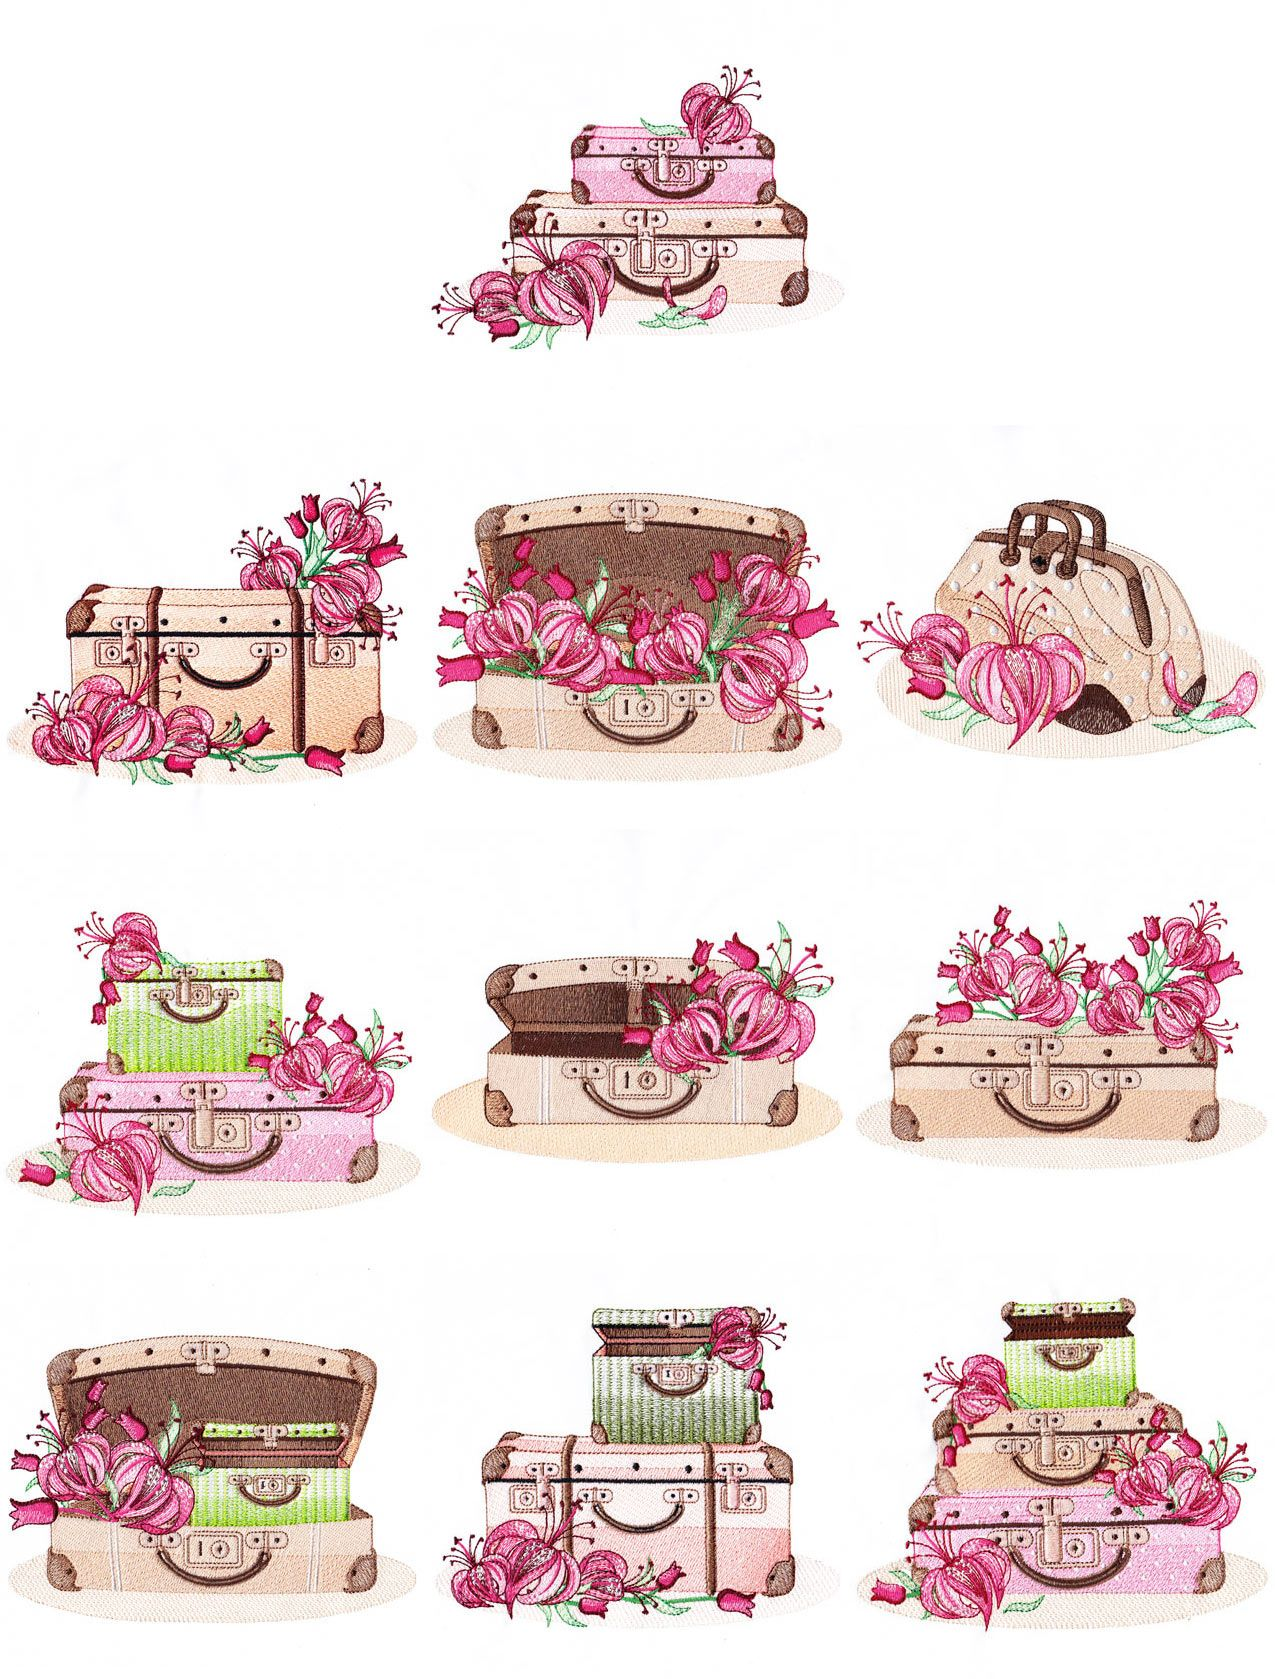 Vintage Suitcases (5x7) | Embroidery Delight | Your source for all embroidery designs, Applique, Quilt Blocks, Animal, Floral, Lacework, etc.